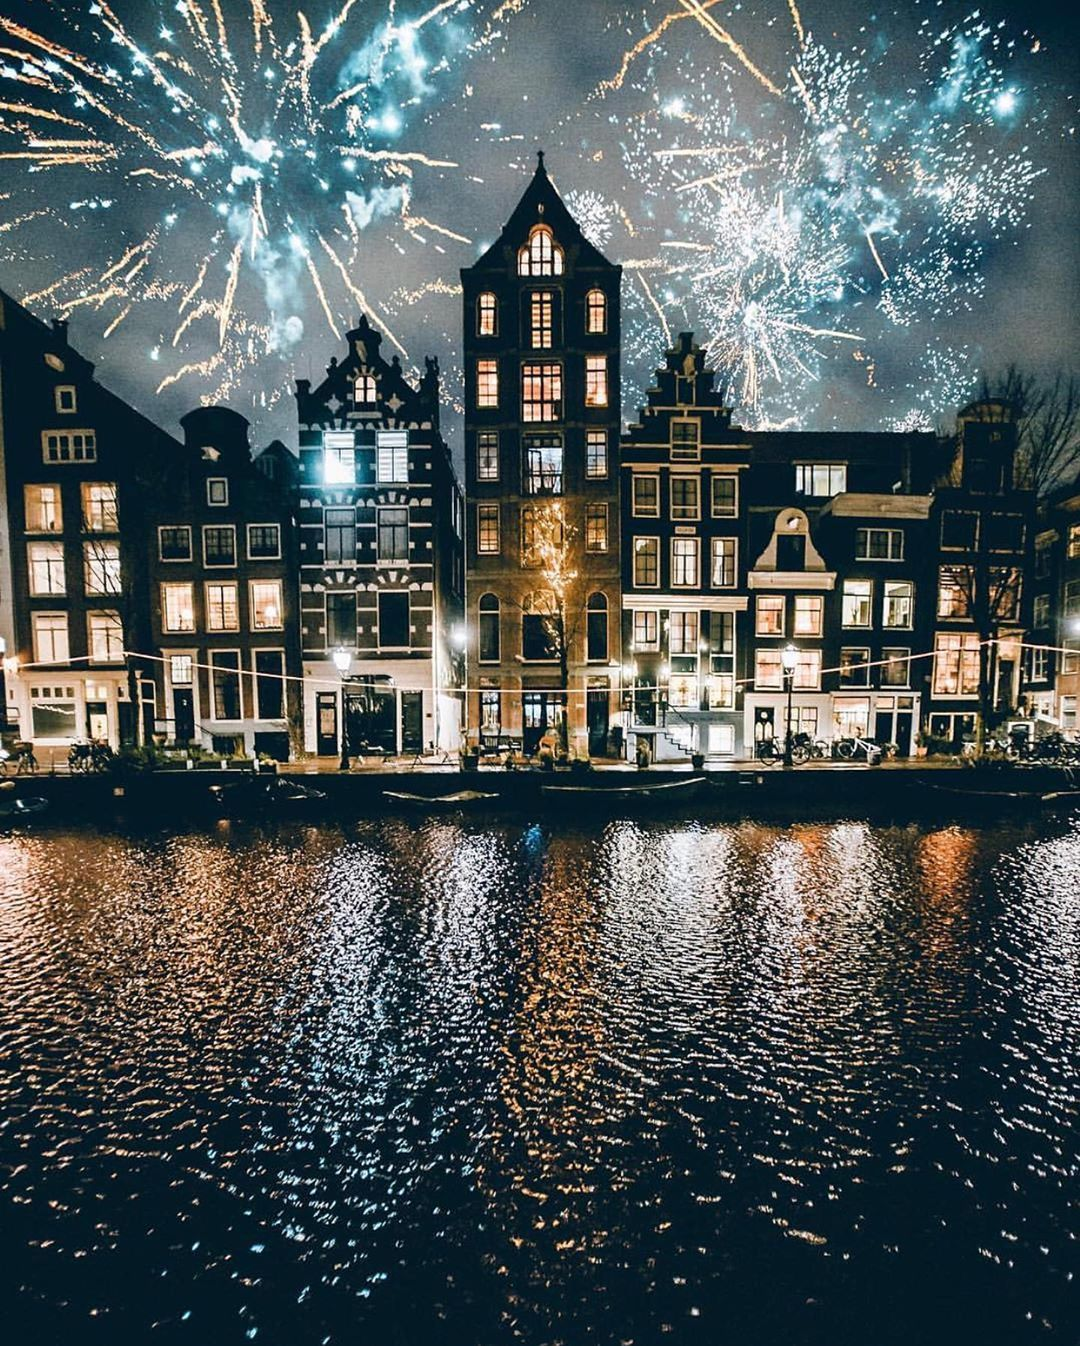 New Year S Eve In Amsterdam Netherlands Happy 2020 To Everyone In 2020 Amsterdam Photography Amsterdam Hotel Amsterdam Travel